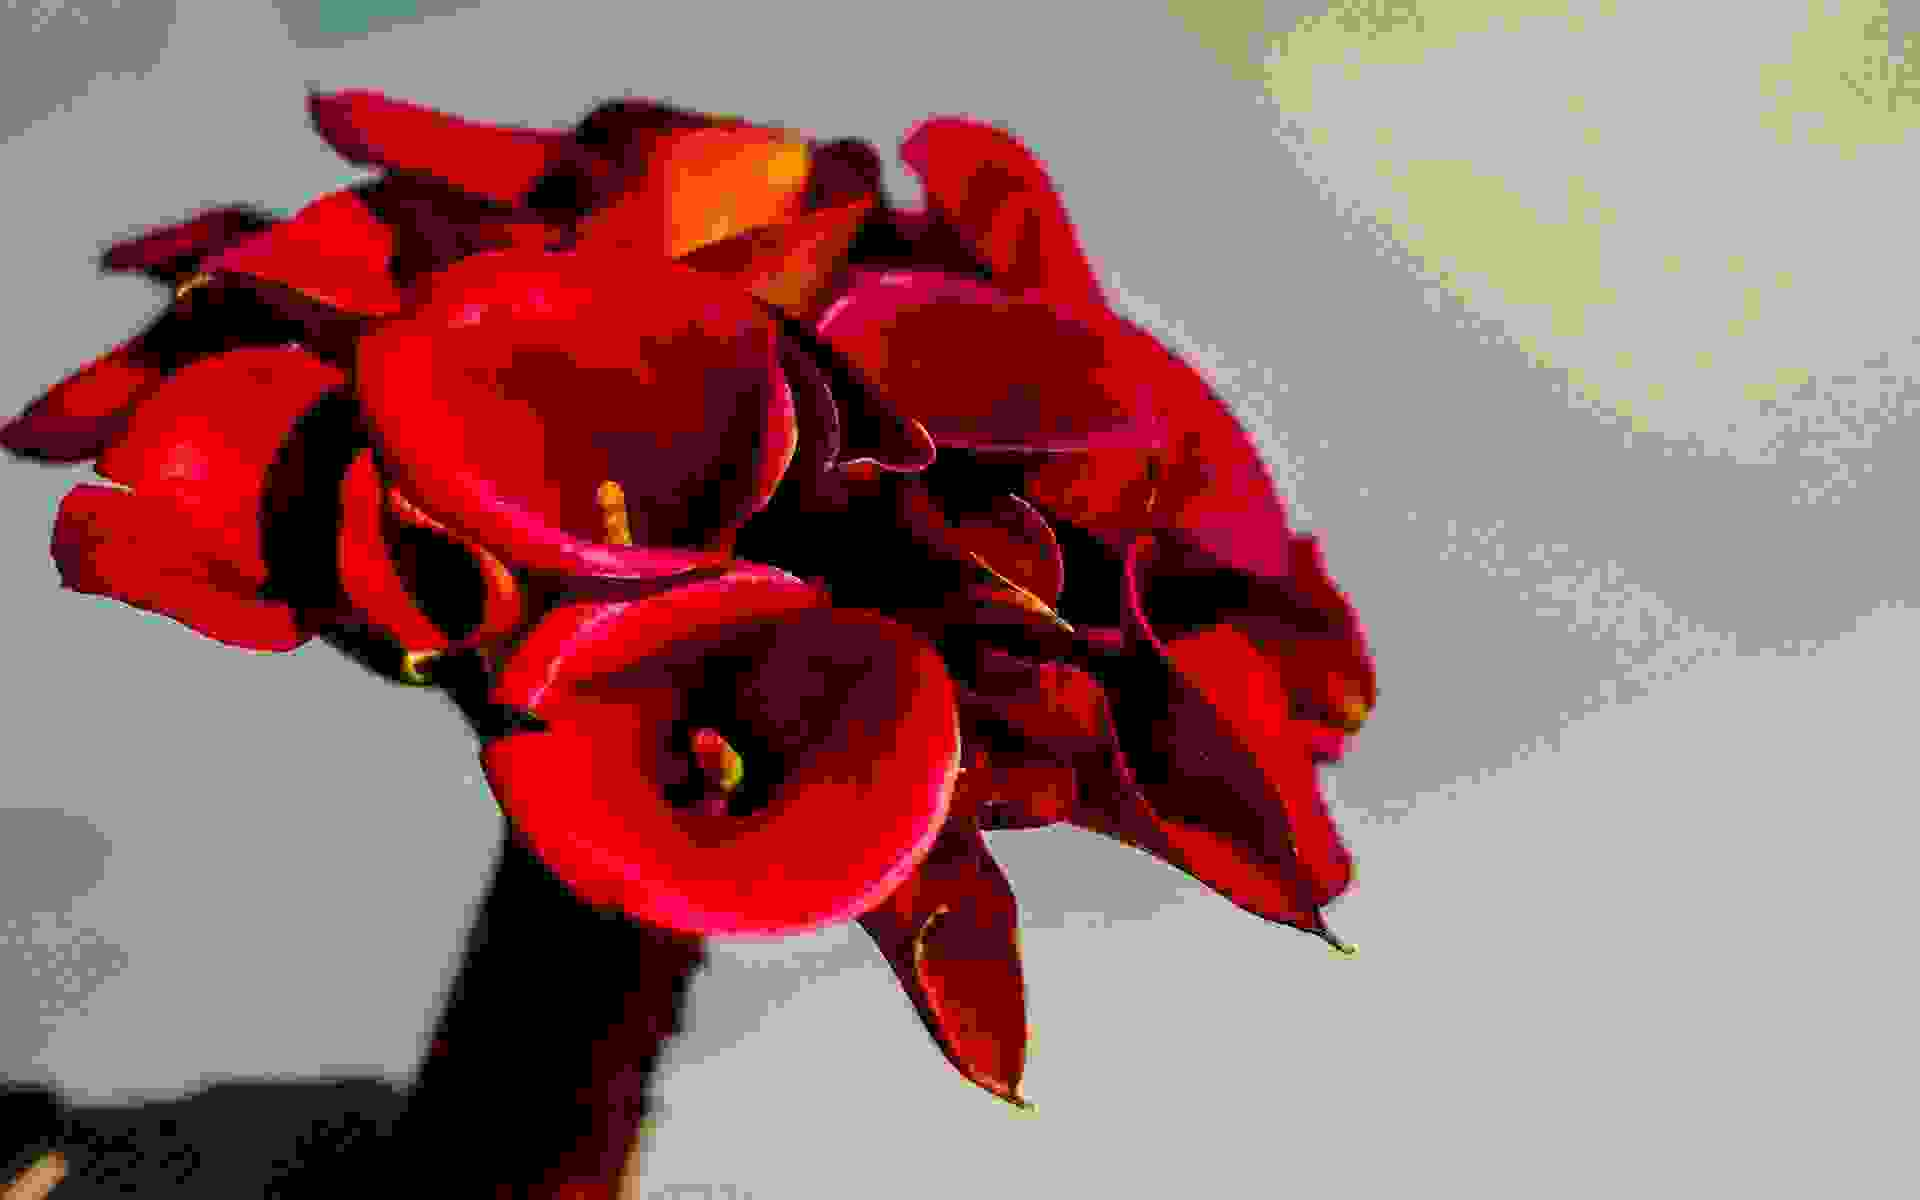 Vibrant-Red-Calla-Lilies-by-Diamond-Events-Wedding-Event-planning-services